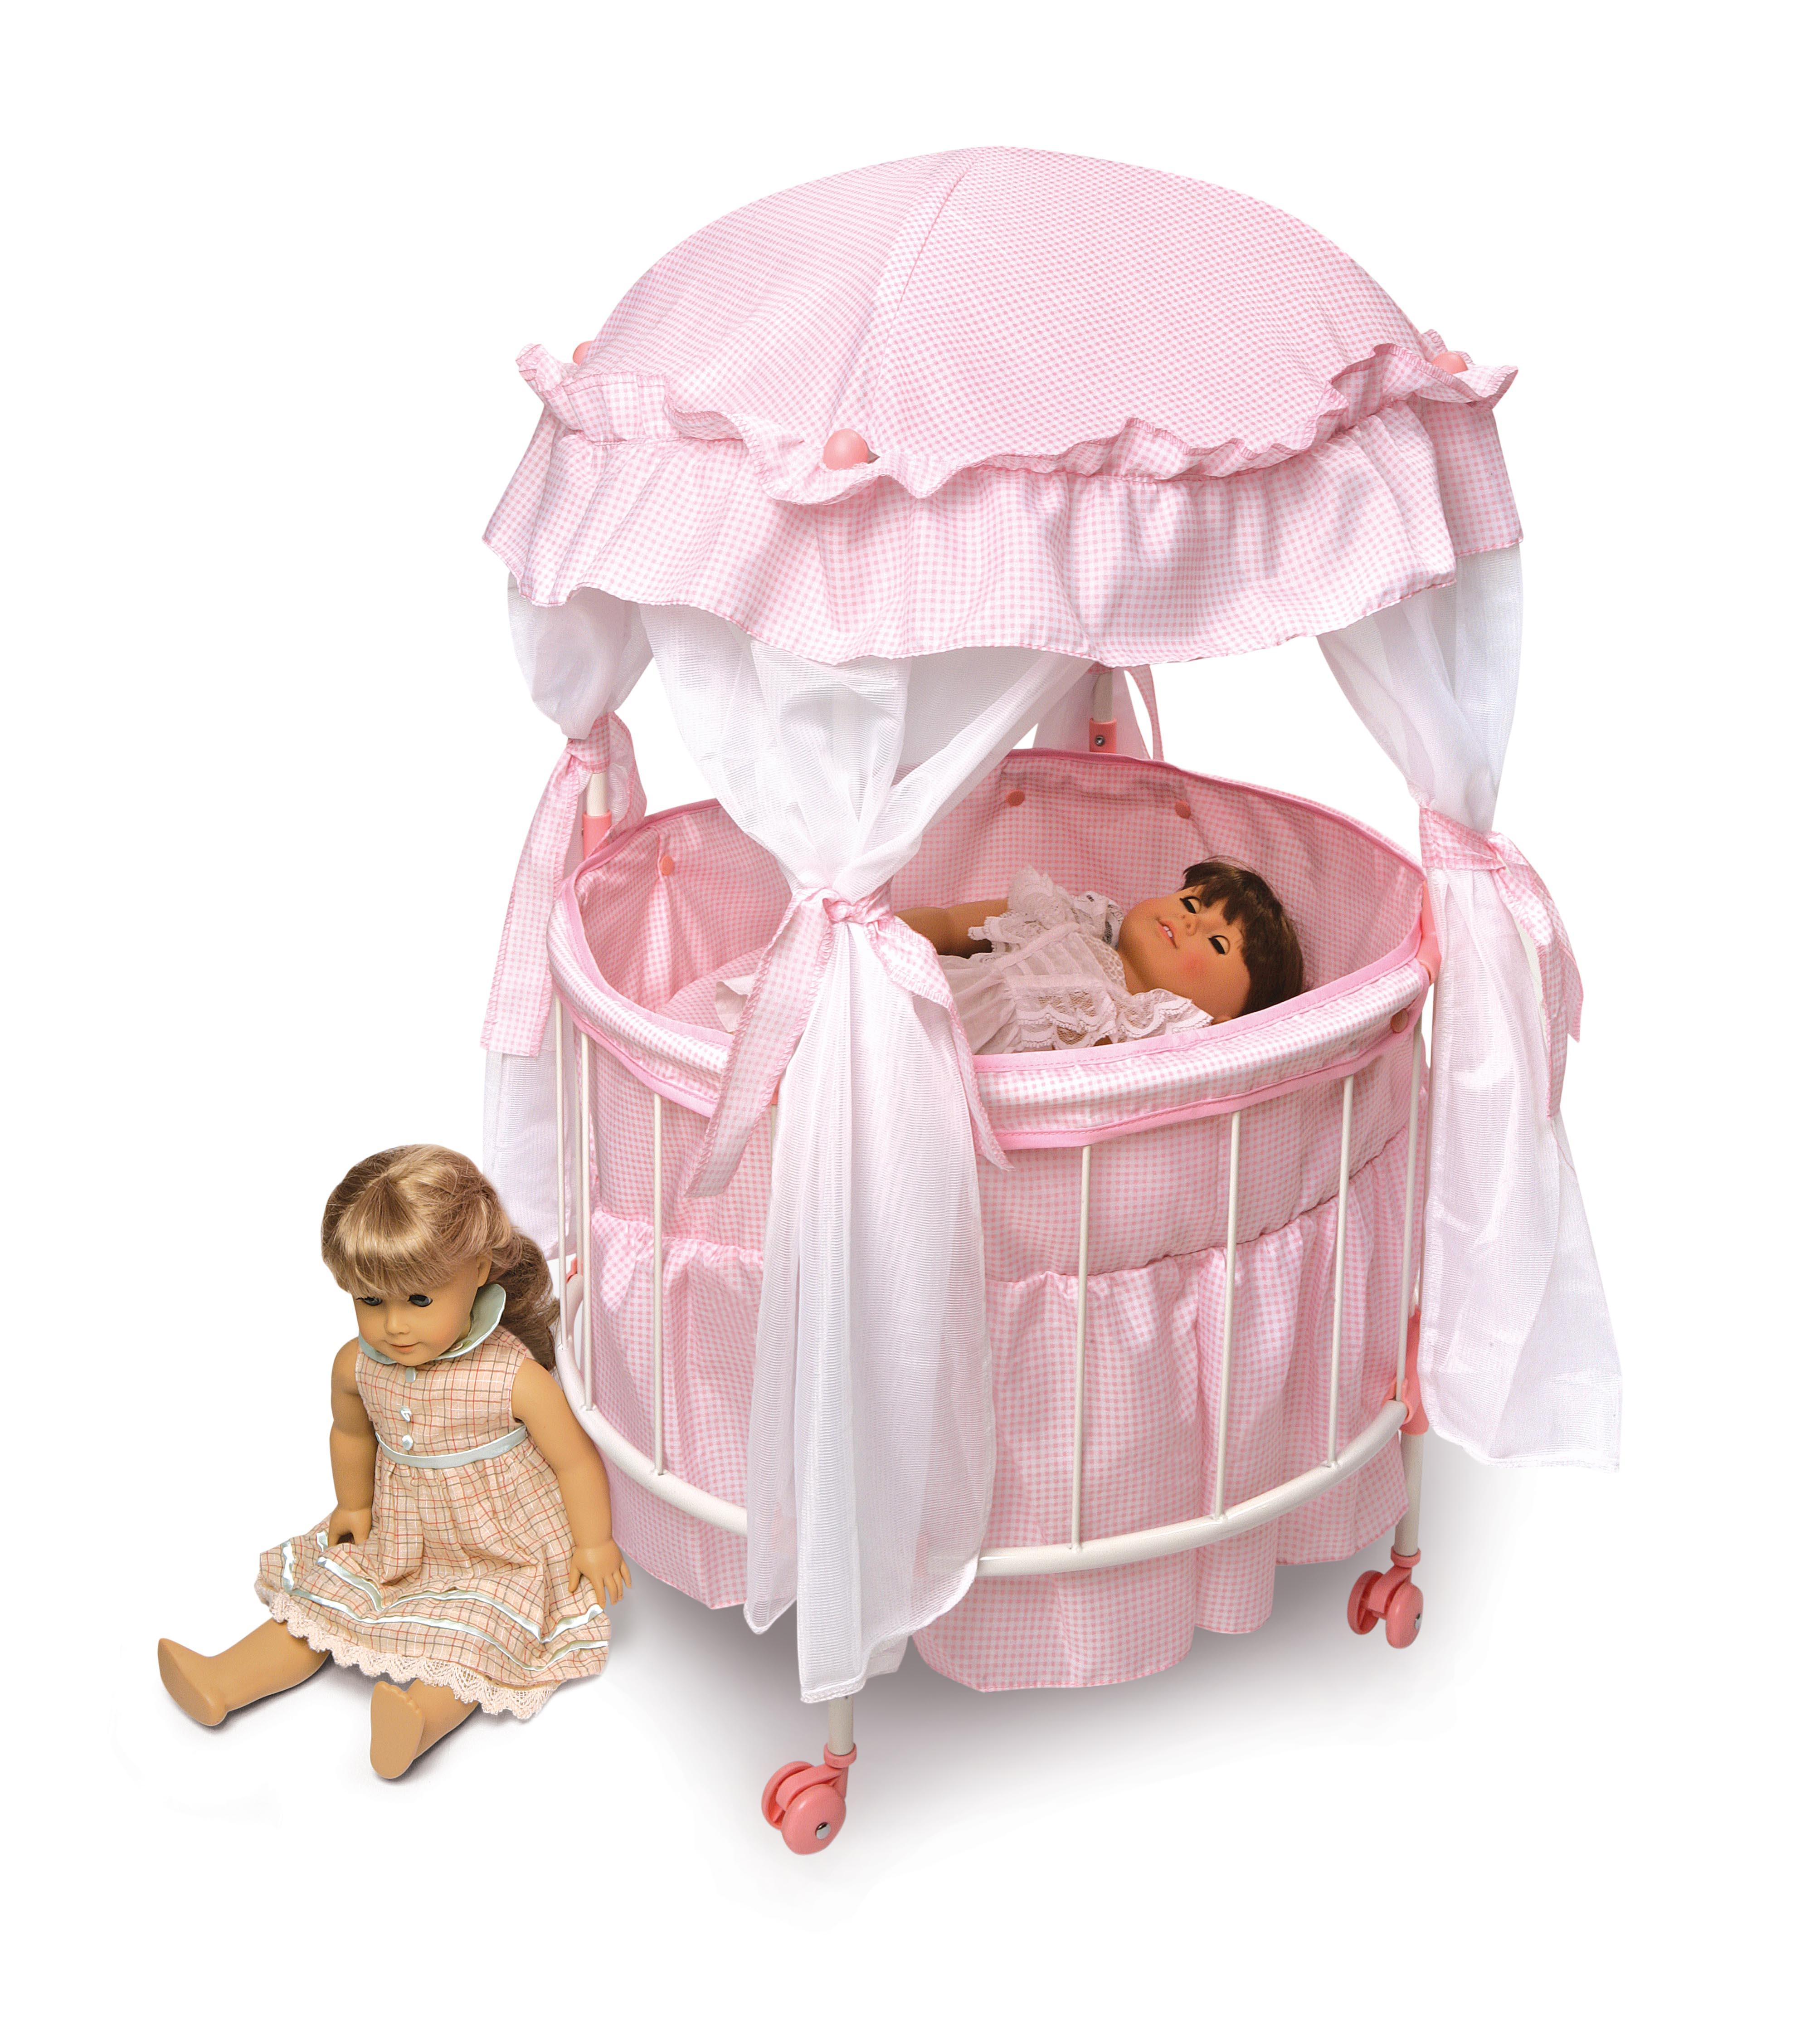 Badger basket 17900 royal pavilion round doll crib with for Baby girl canopy cribs